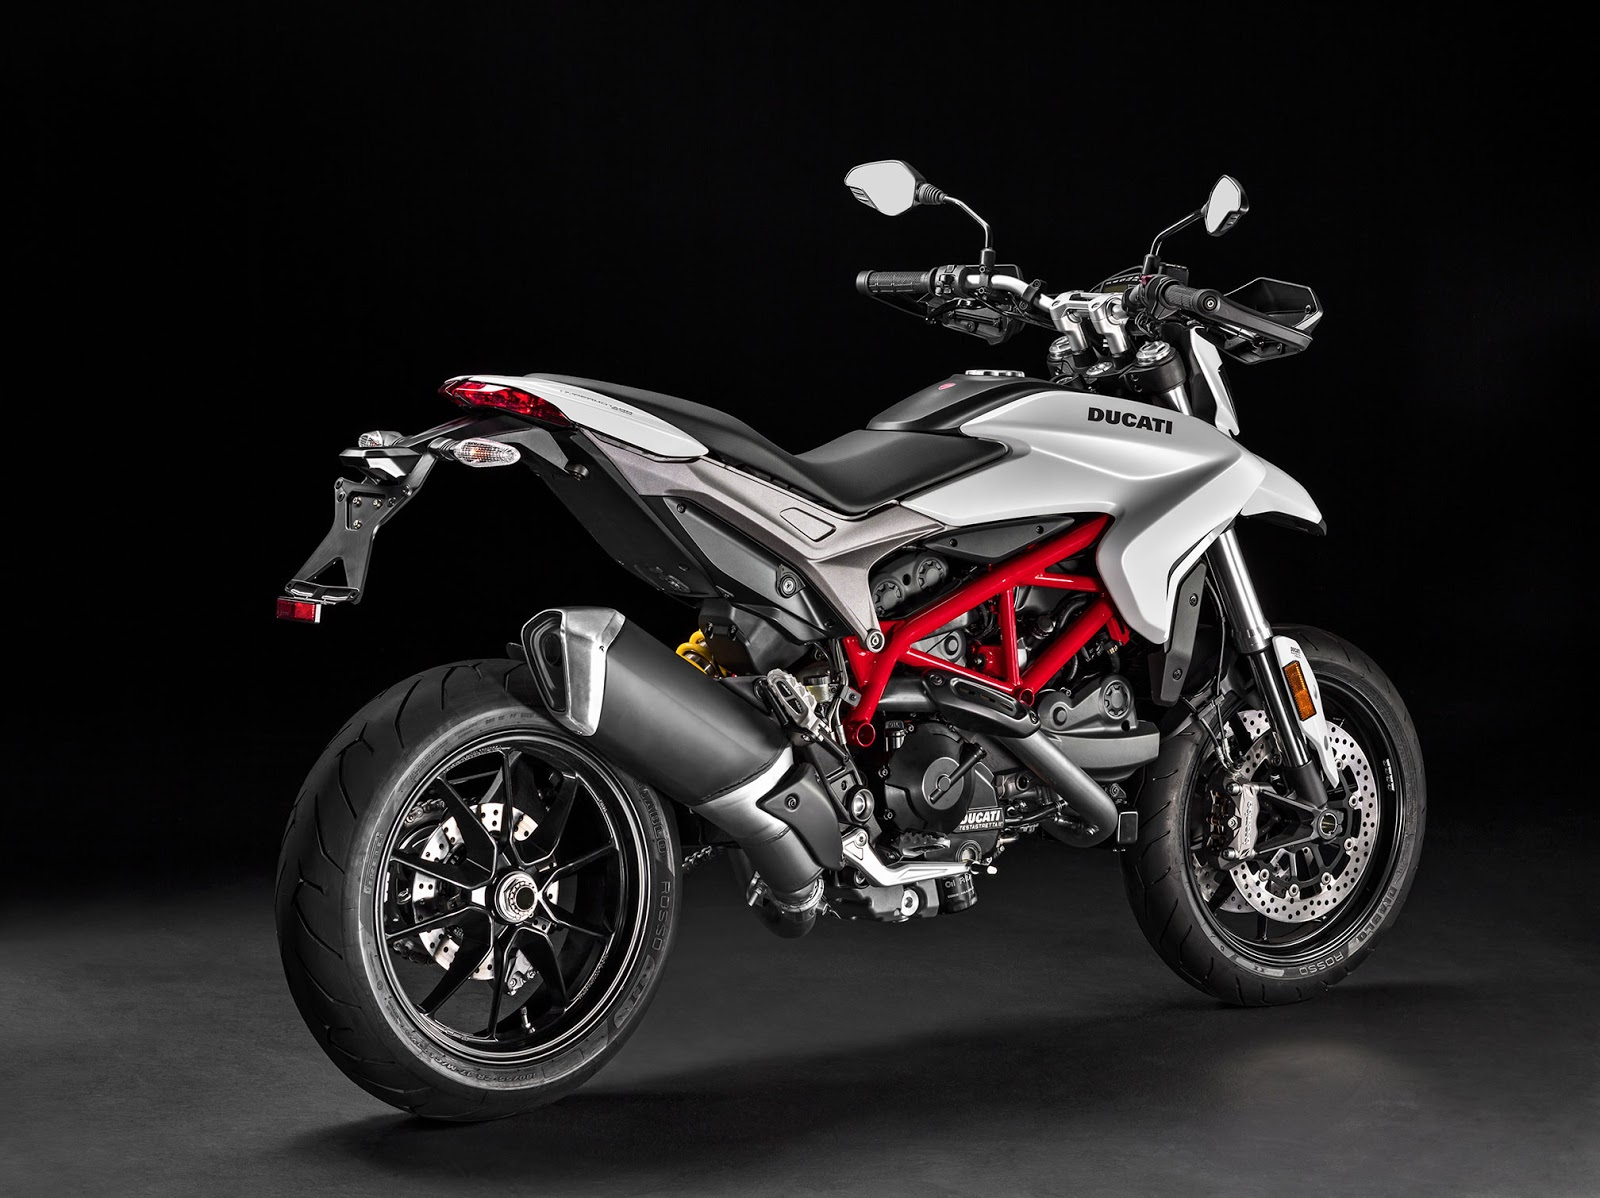 DUCATI HYPERMOTARD 2016 Repair Workshop Manual (PDF)